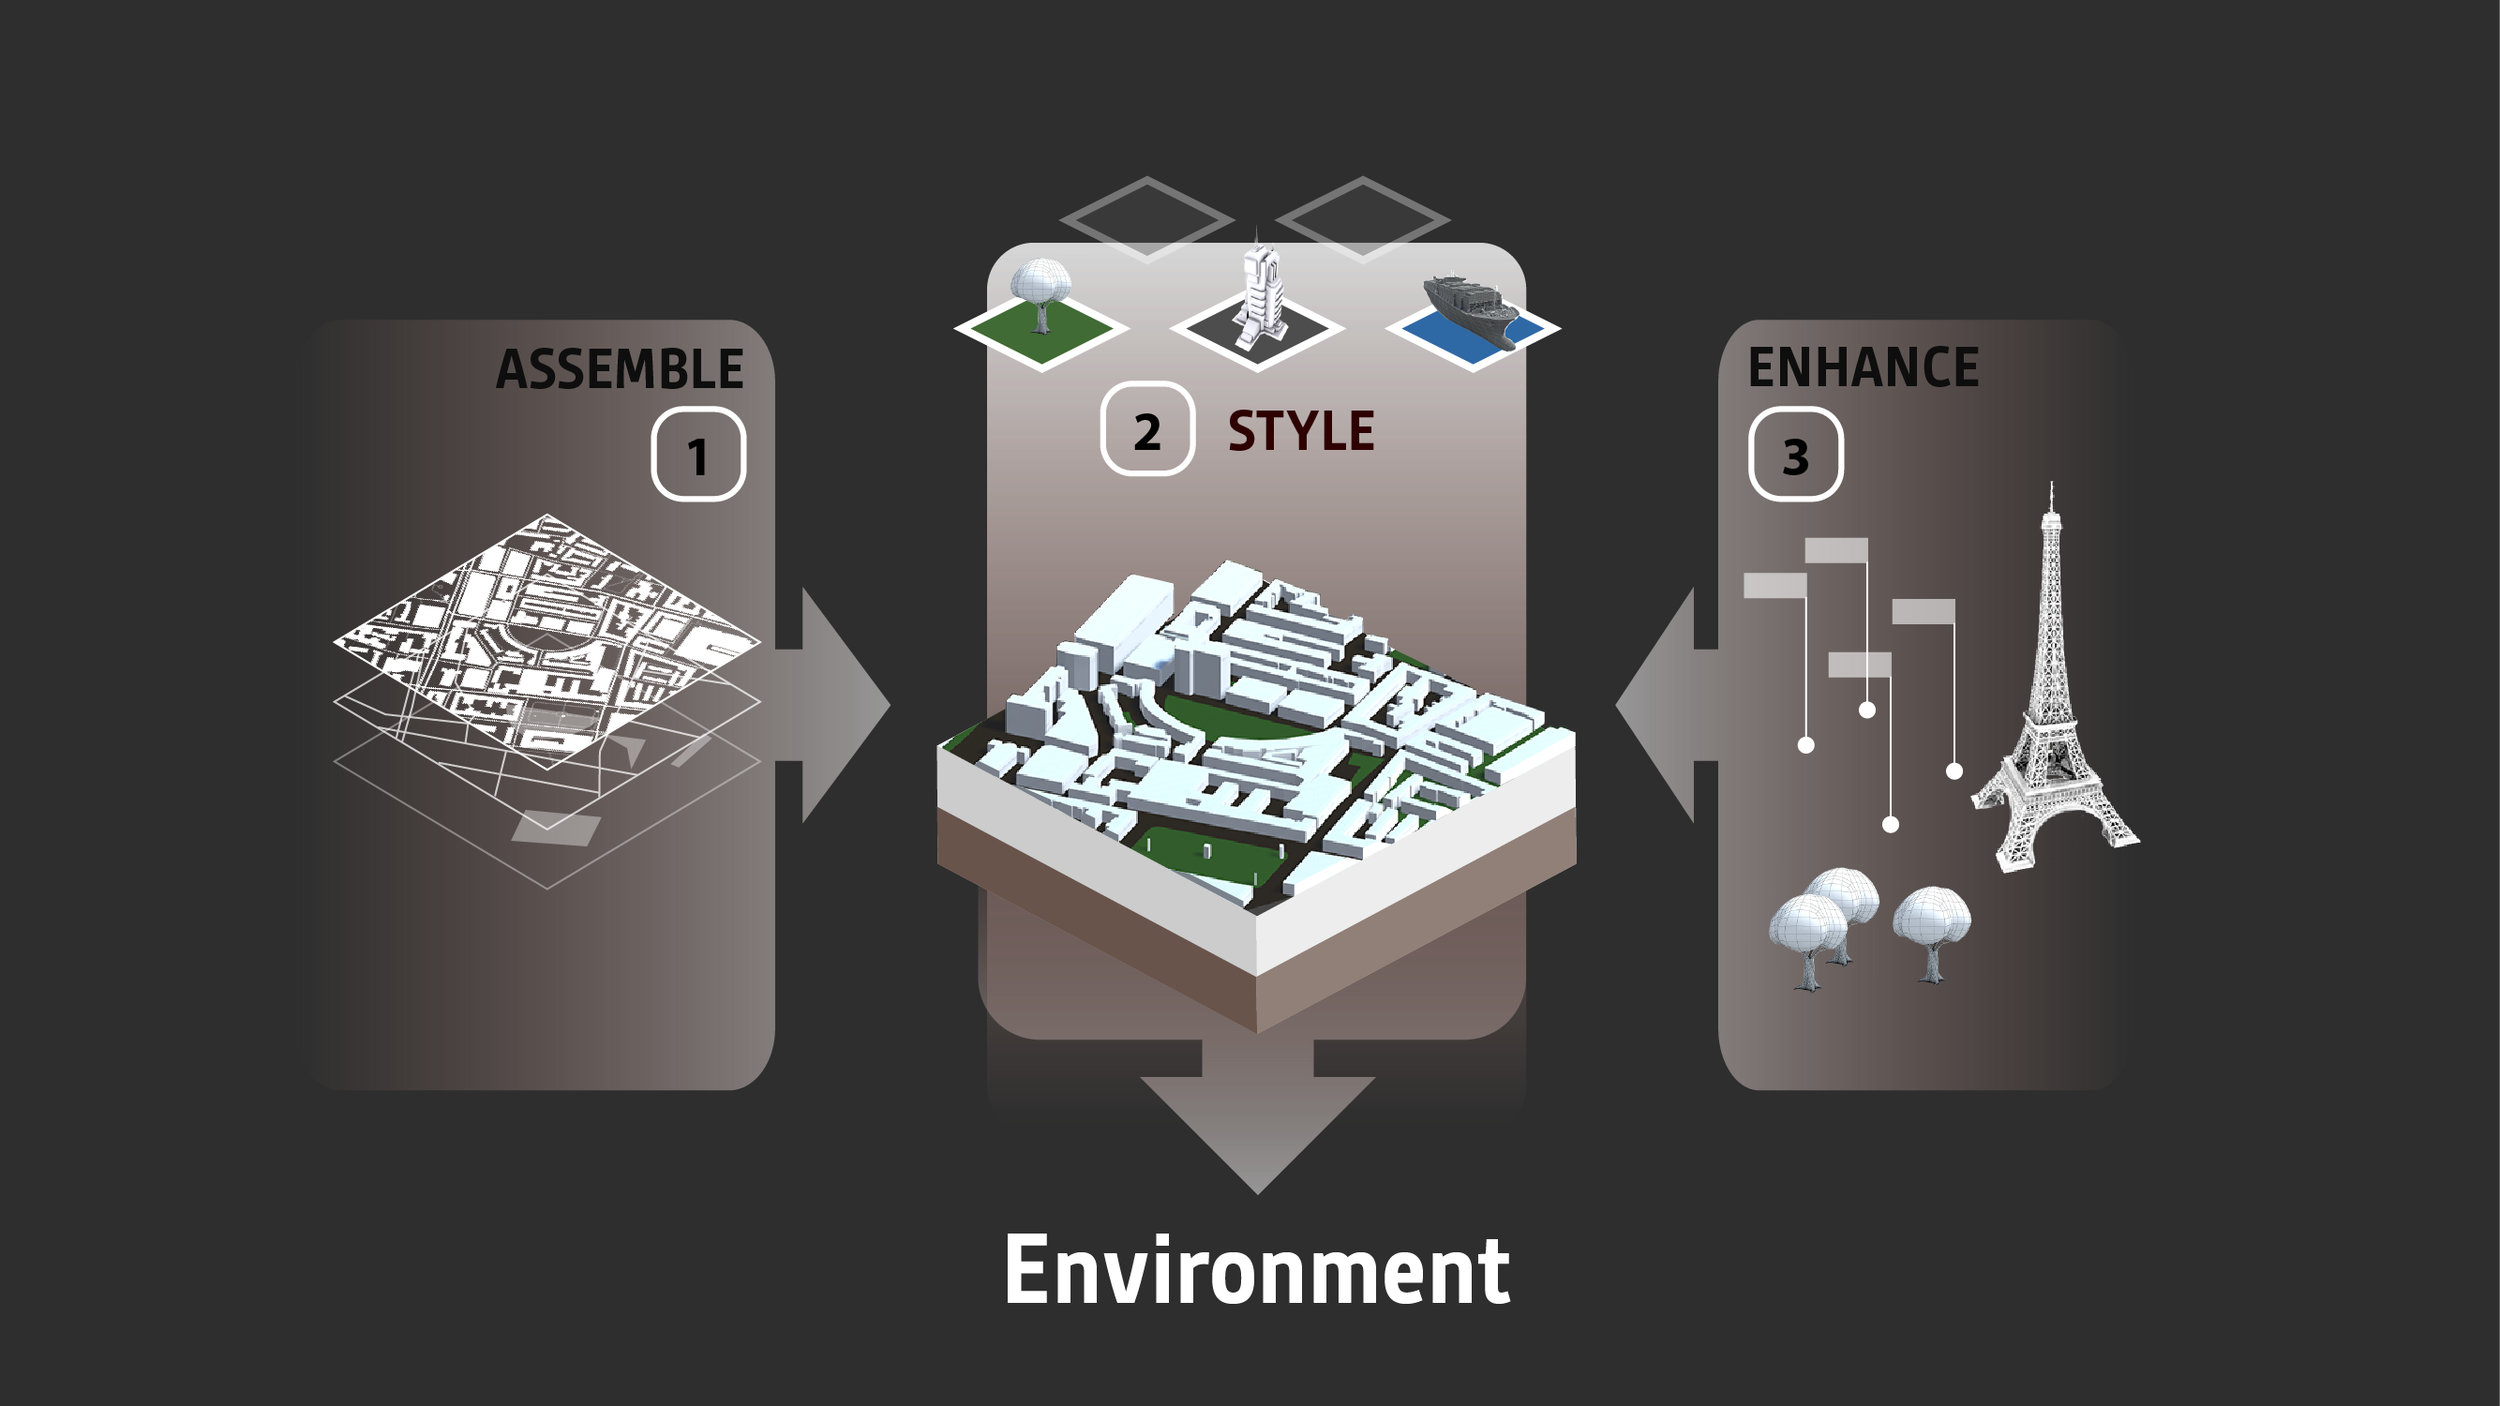 Map data + Themes & Styles + custom content = Your environment!